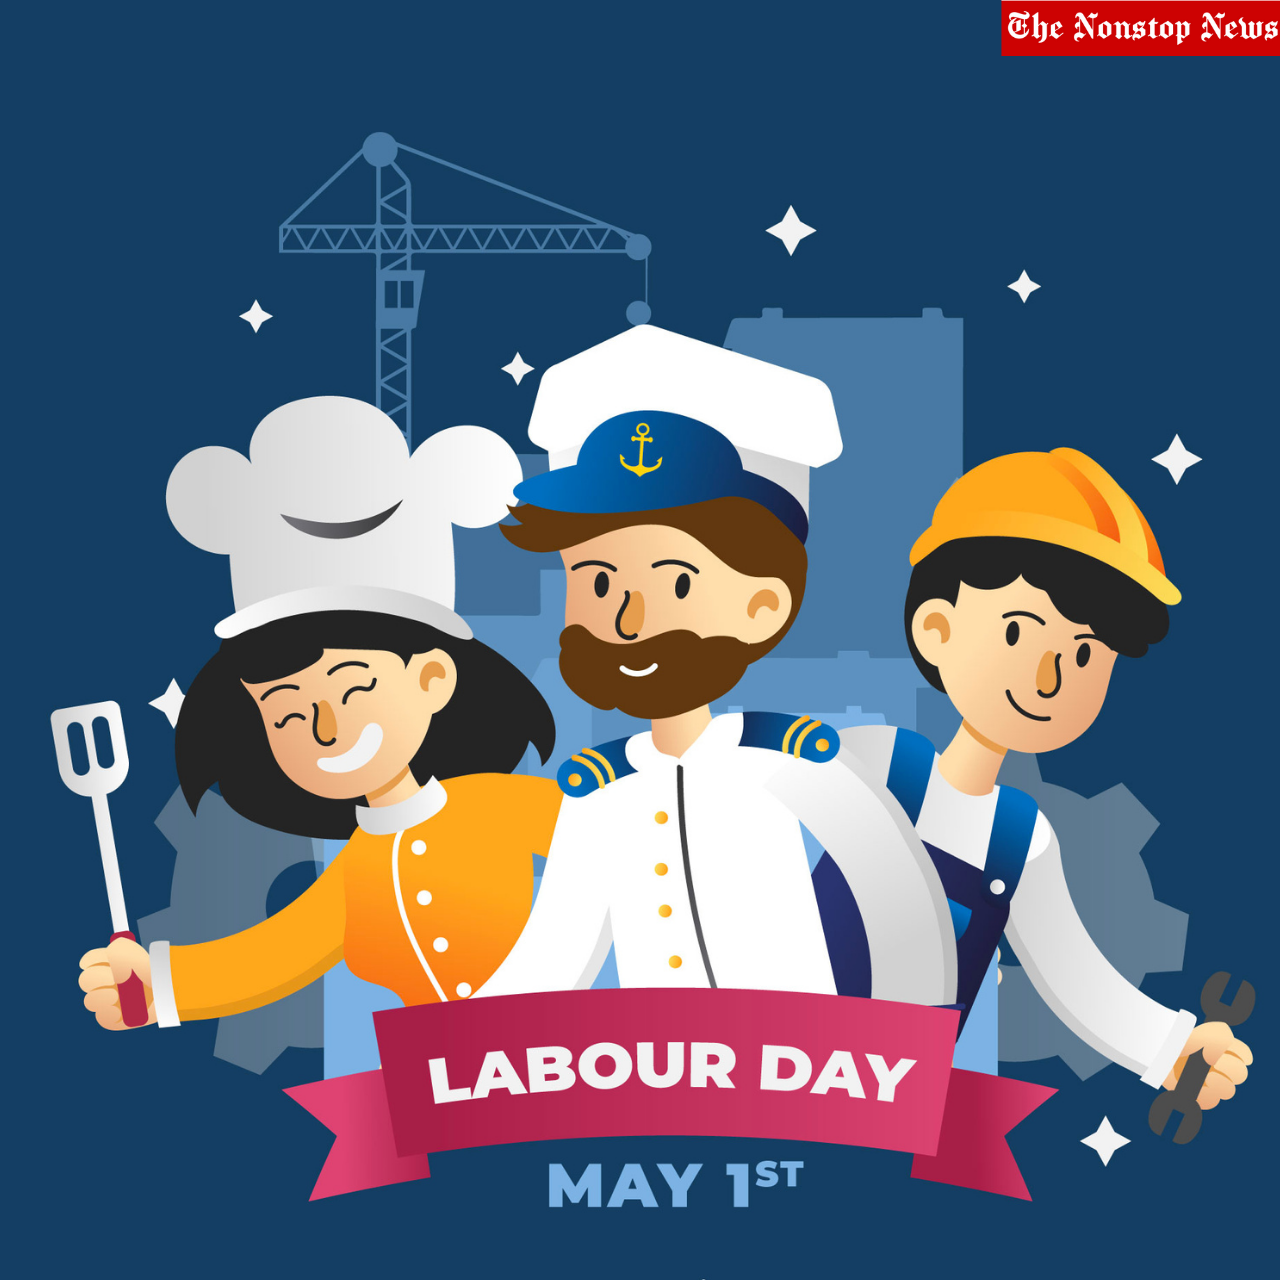 Happy International Labors Day 2021 Quotes, Messages, Greetings, Wishes, and HD Images to Share